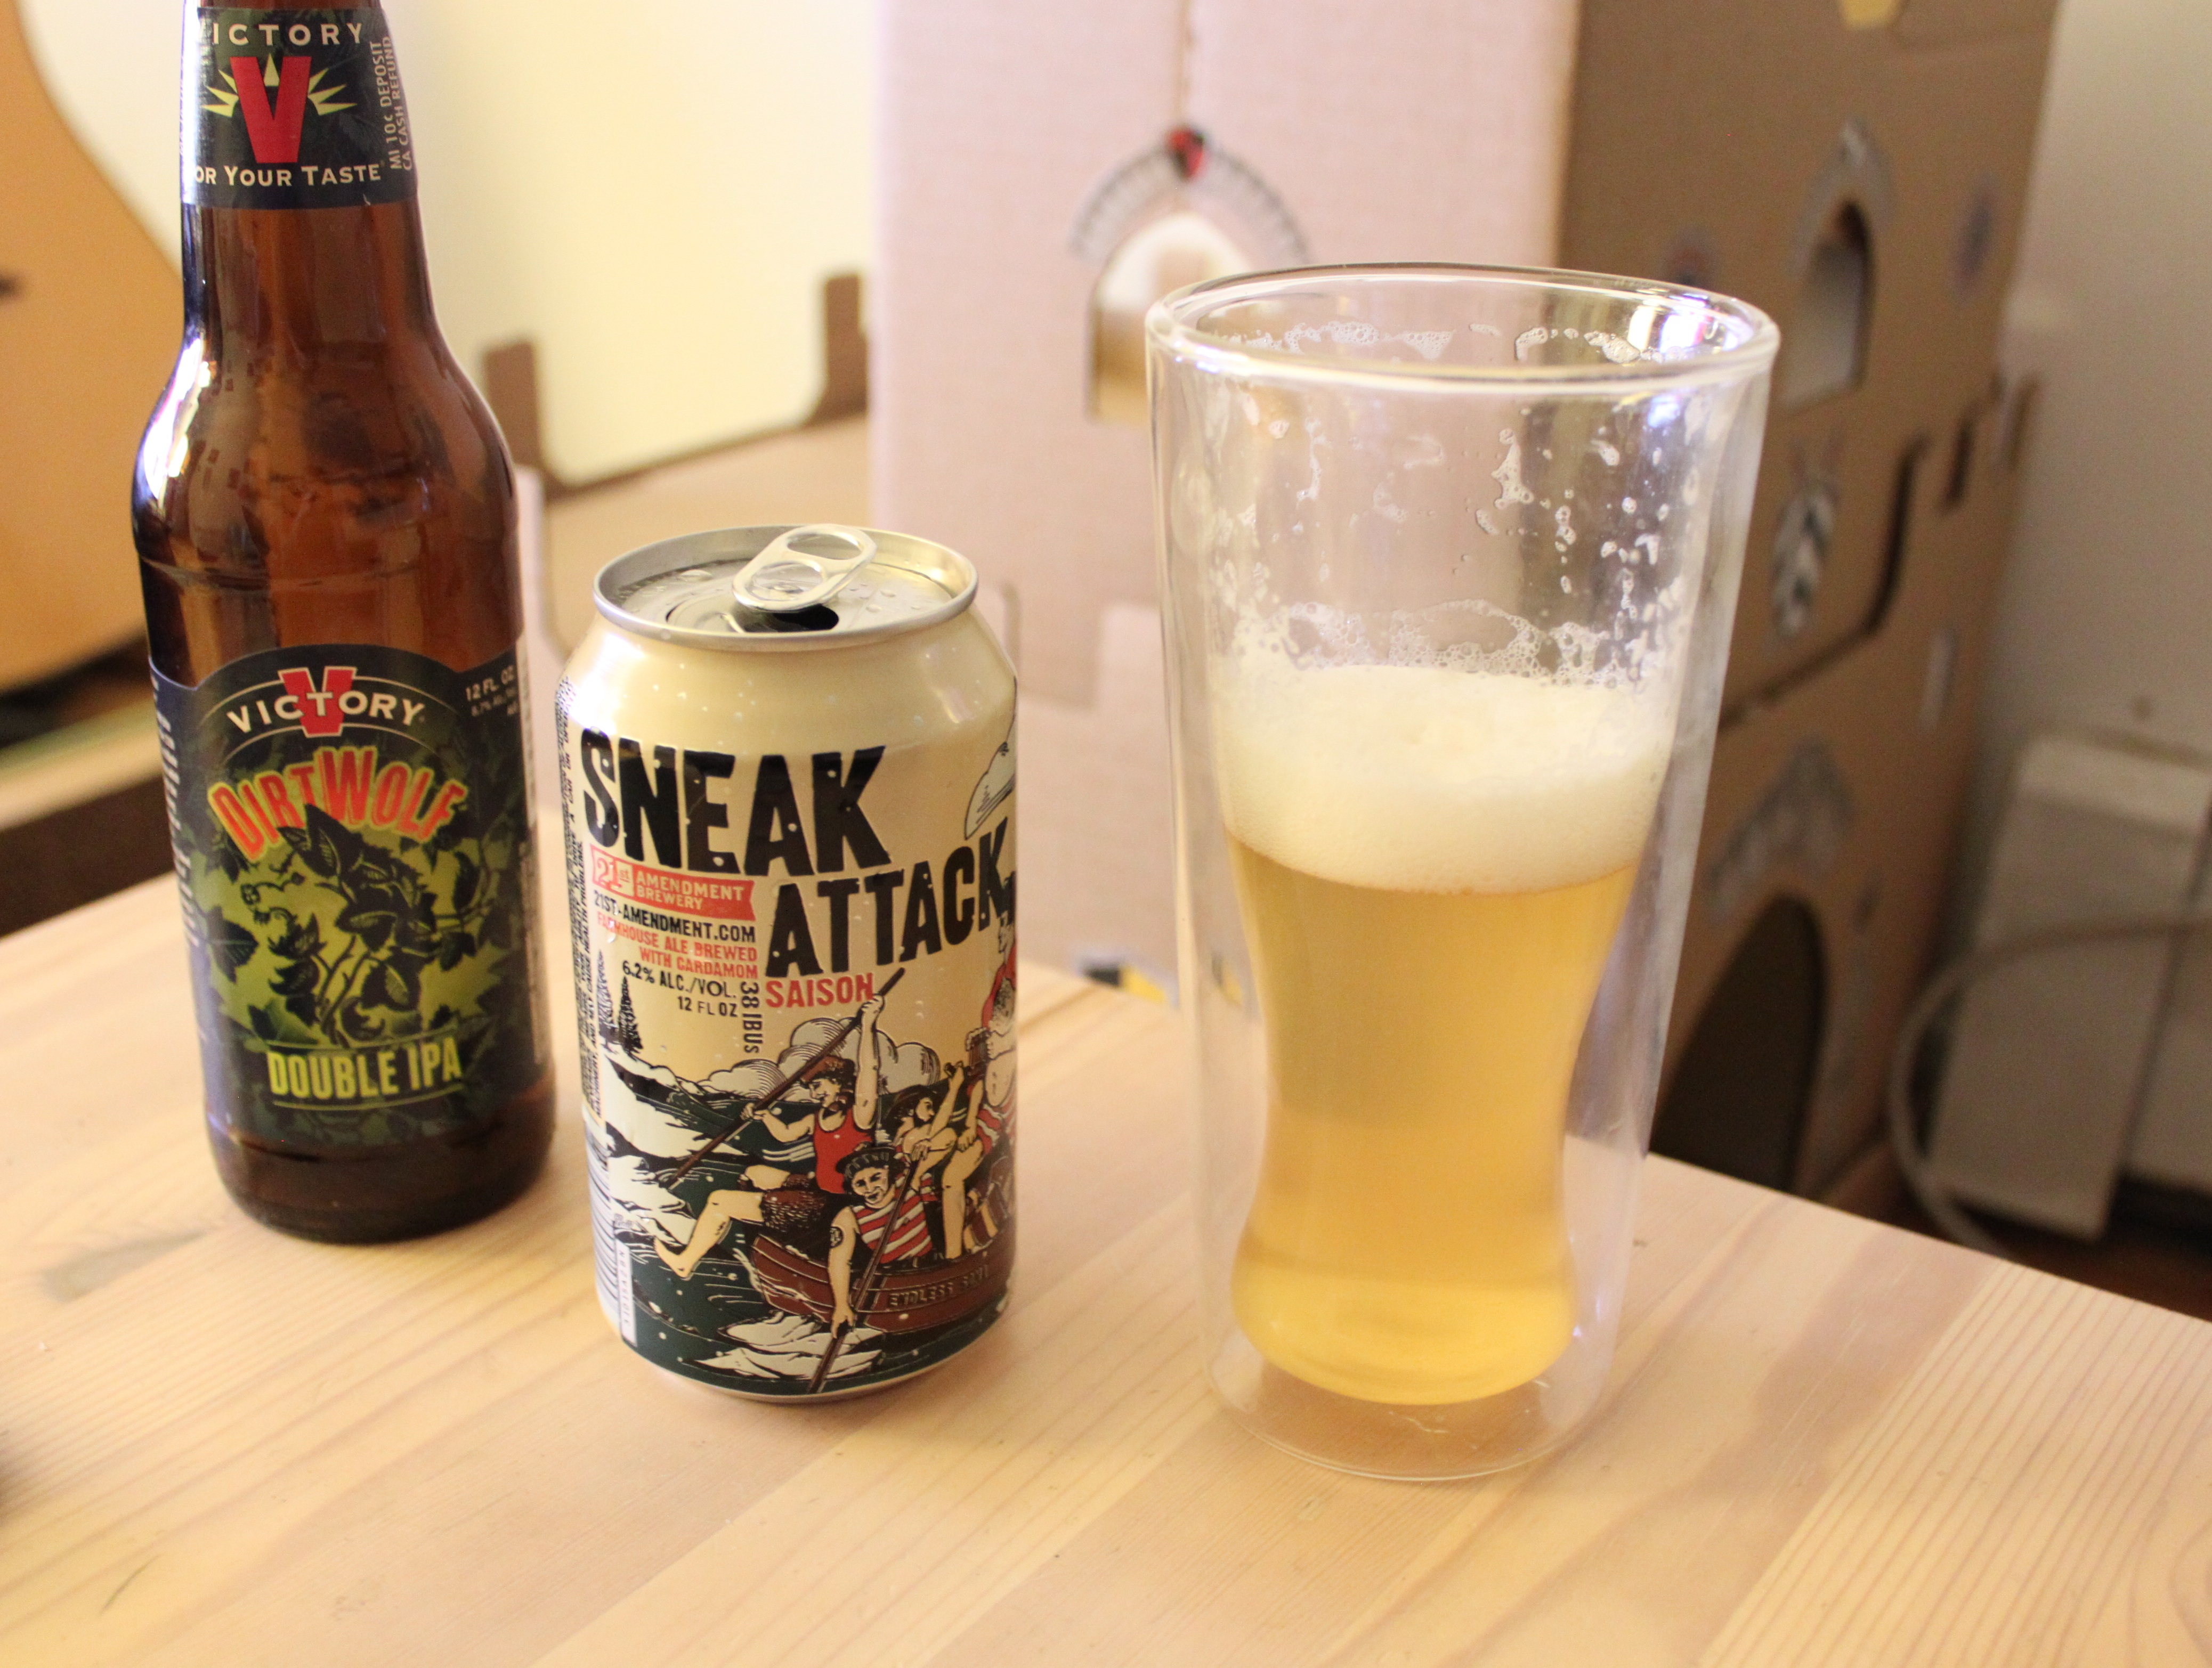 21st Amendment Sneak Attack Review